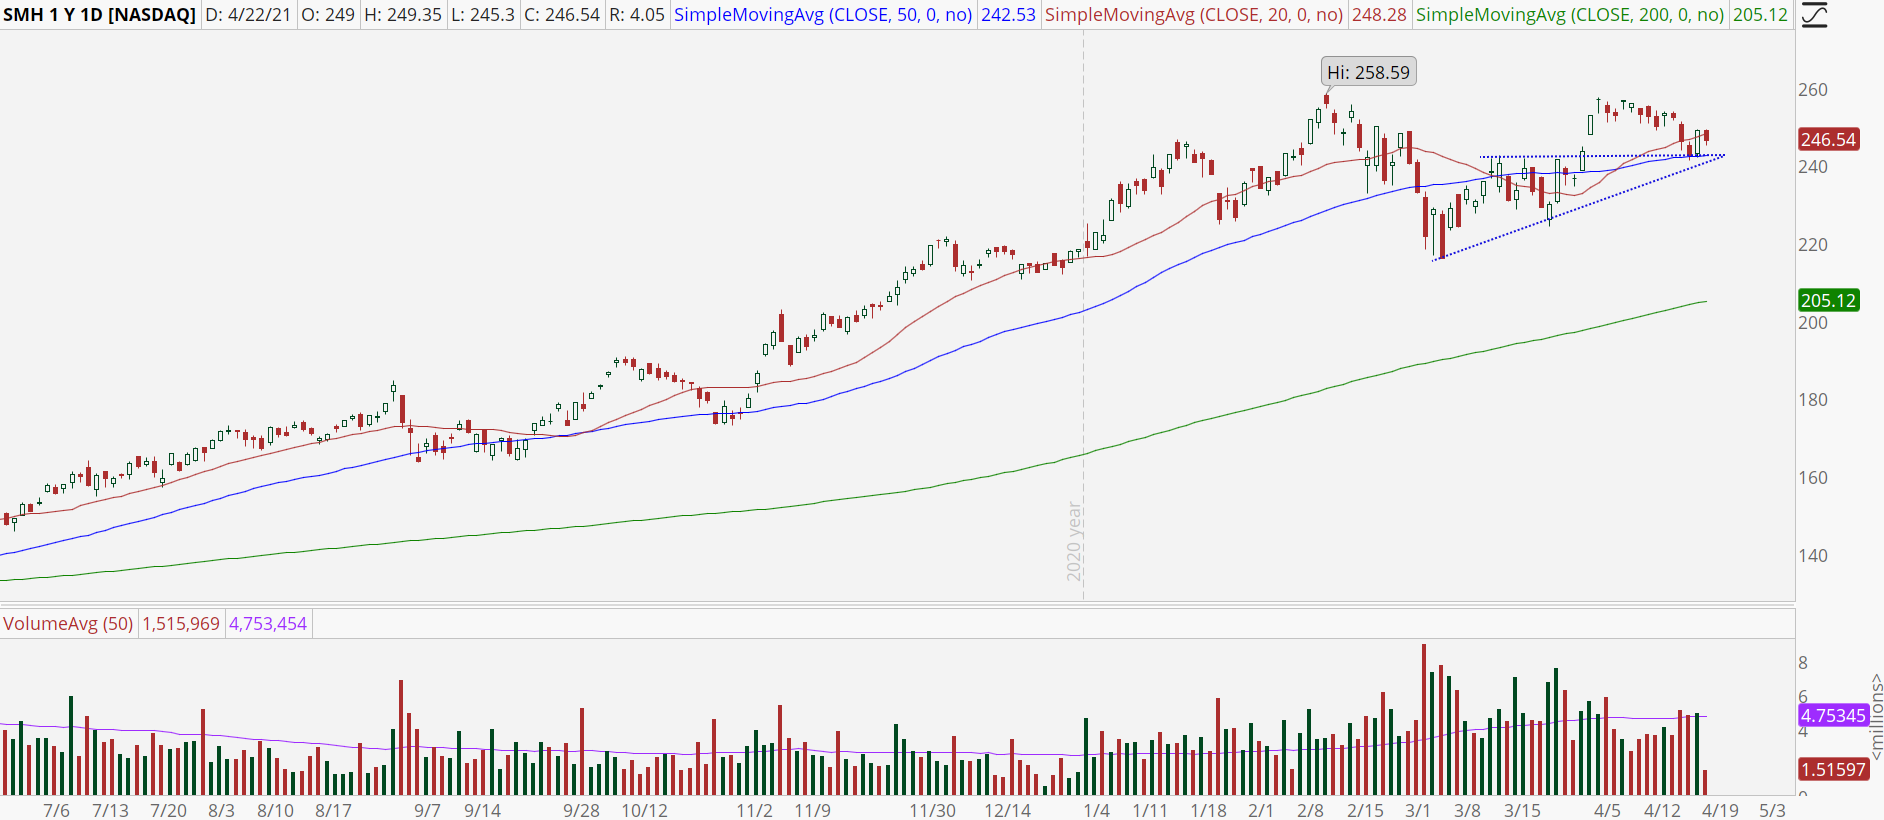 Semiconductor ETF (SMH) with fresh uptrend.